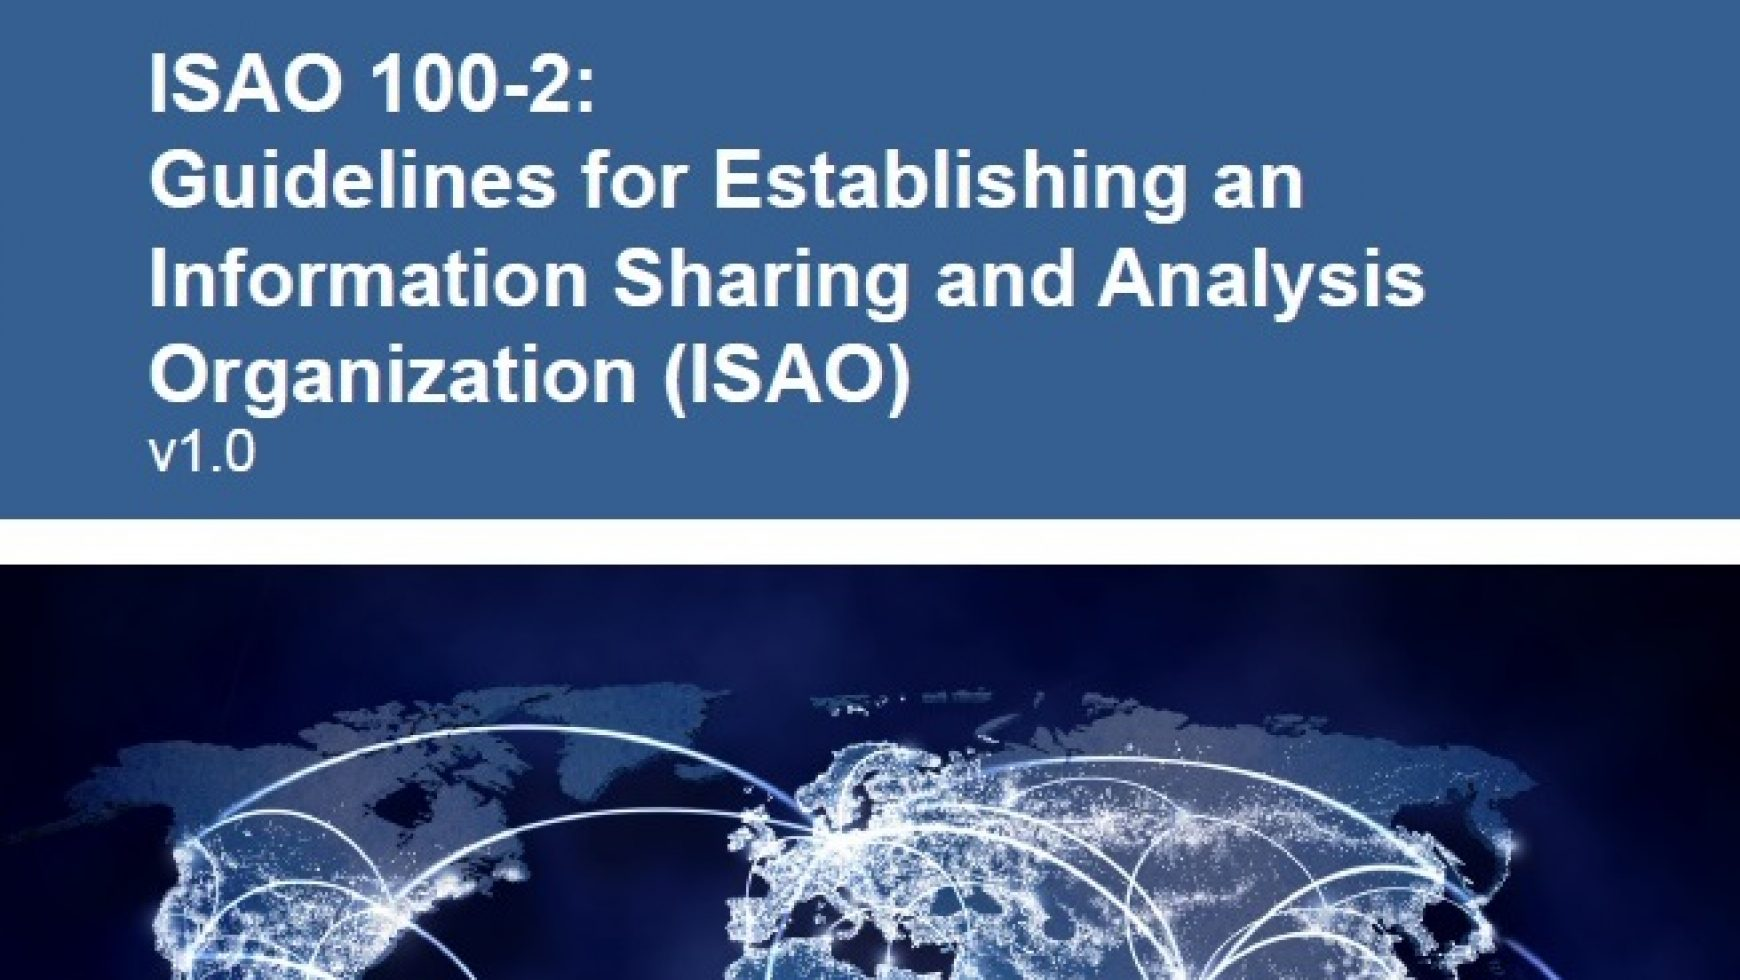 ISAO 100-2: Guidelines for Establishing an Information Sharing and Analysis Organization (ISAO) v1.0